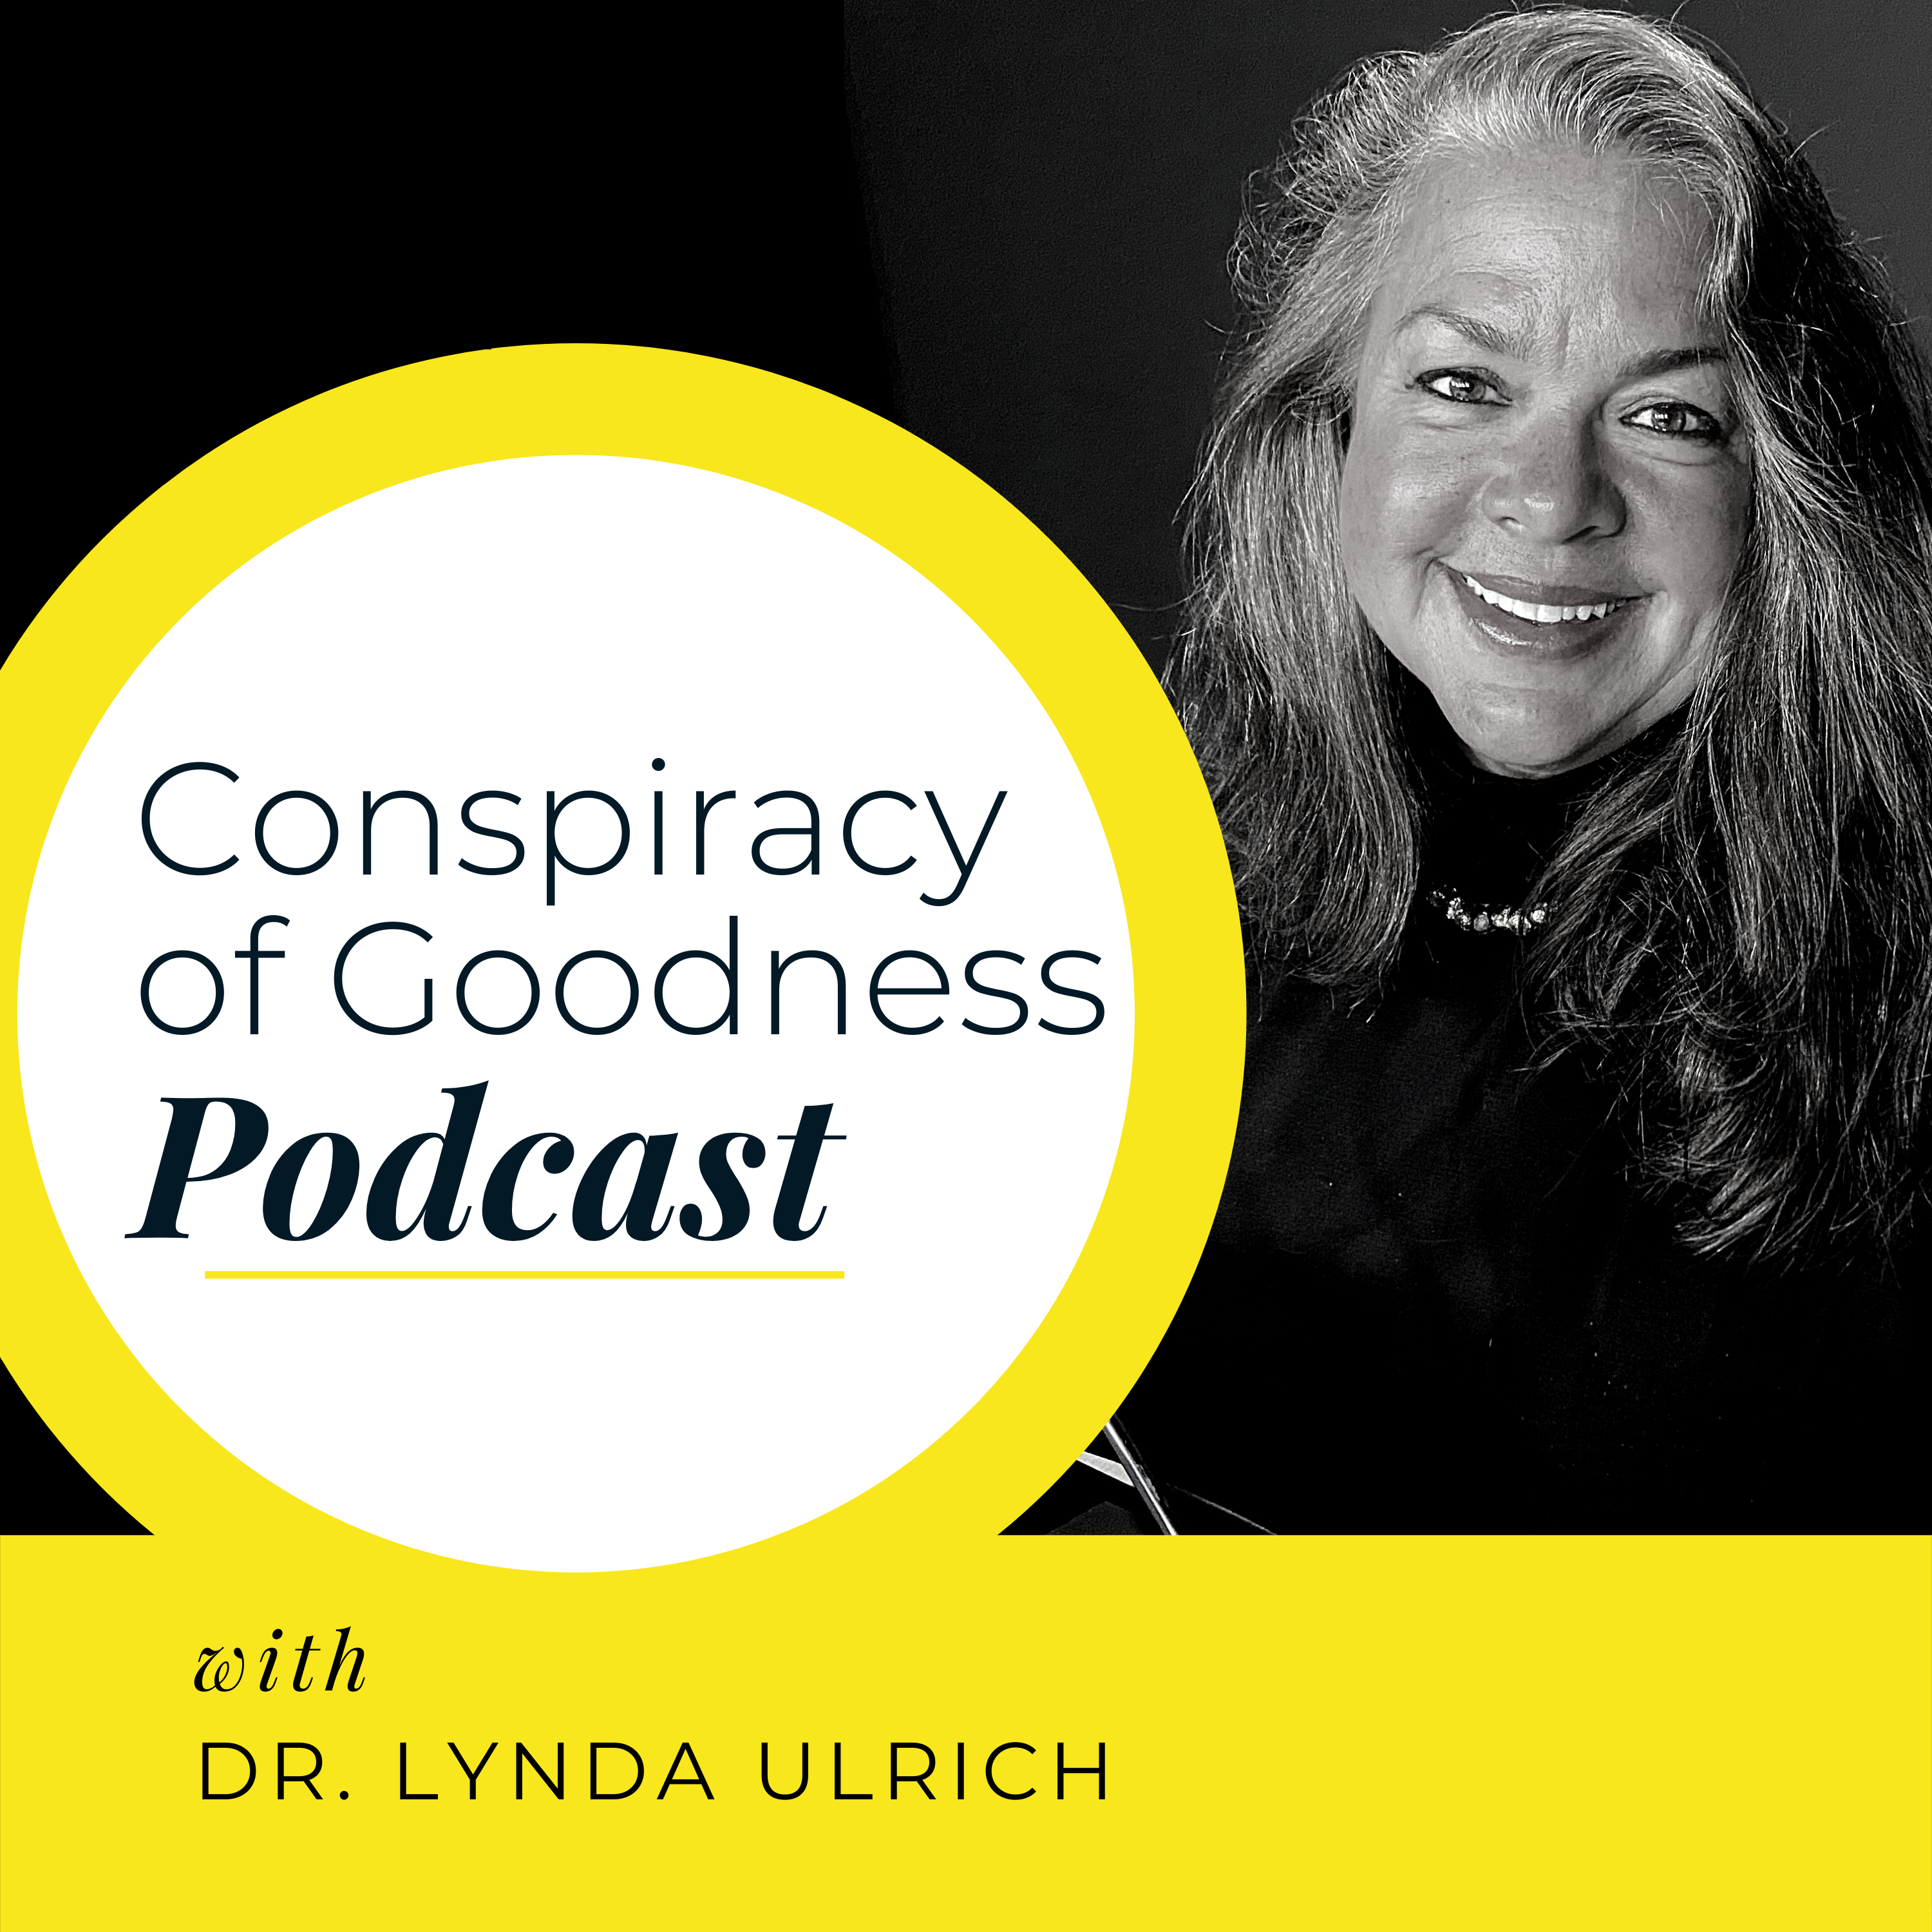 The Truth Behind the Conspiracy of Goodness with Liesl Ulrich-Verderber show art